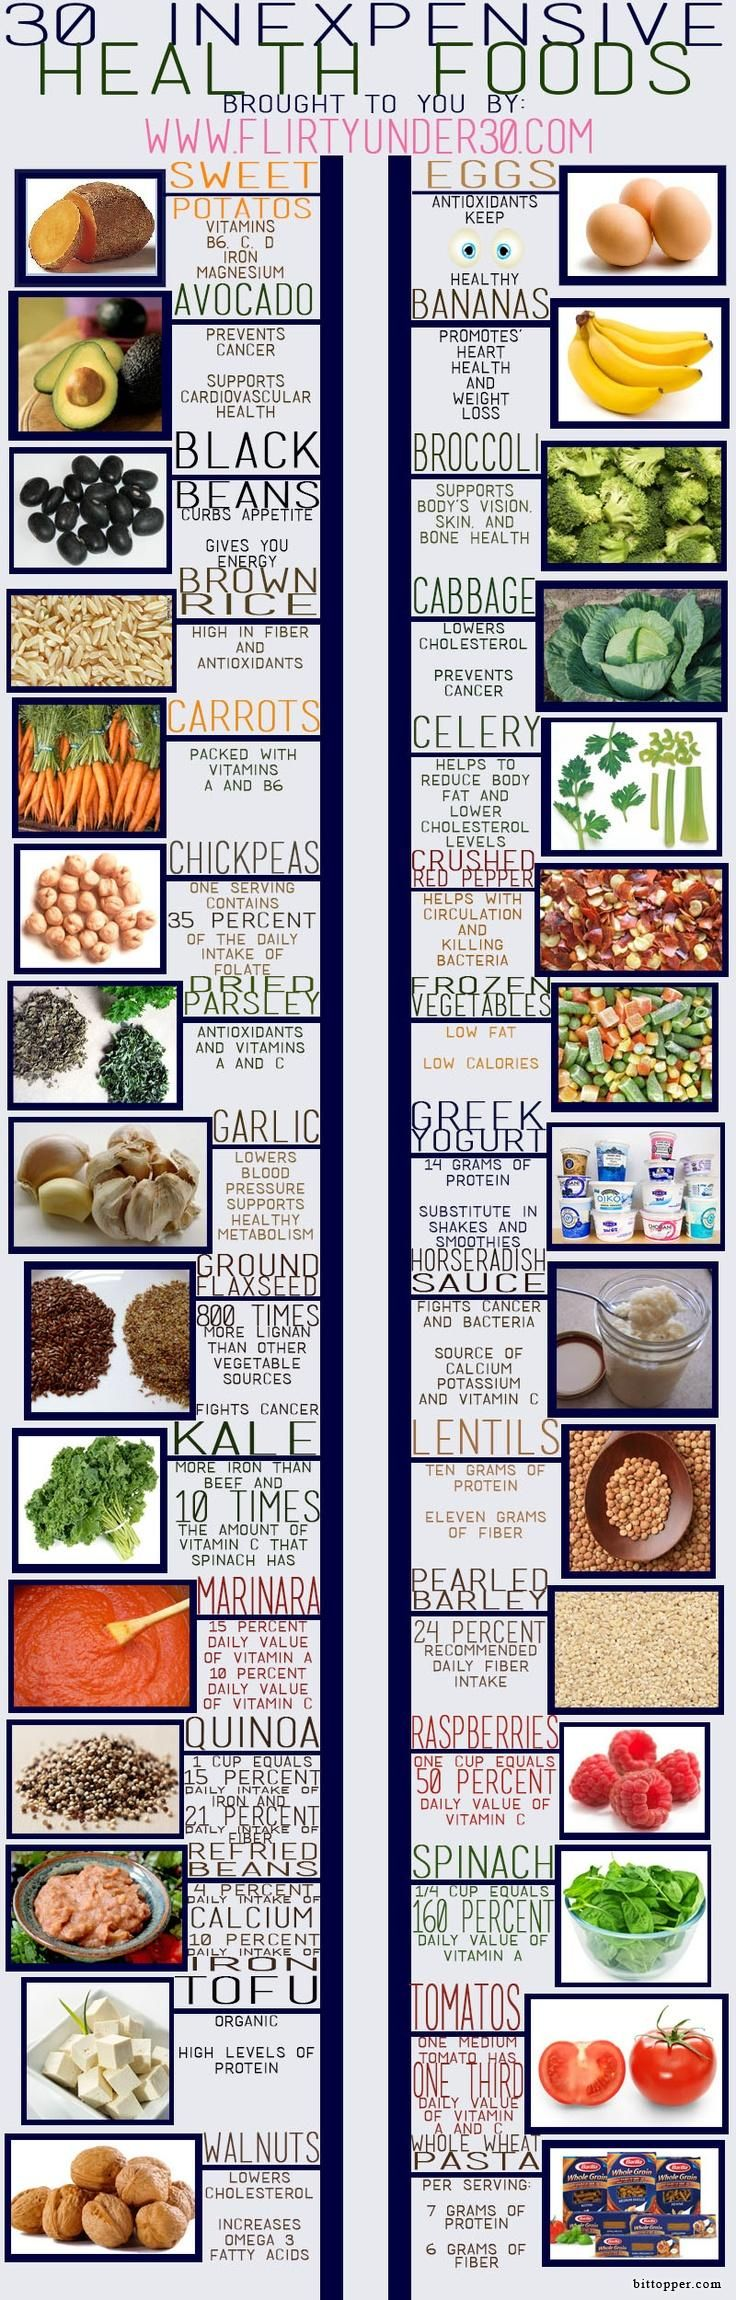 30 inexpensive health foods infographic via www.bittopper.com/post.php?id=695323234526c511bb13ca6.21700605